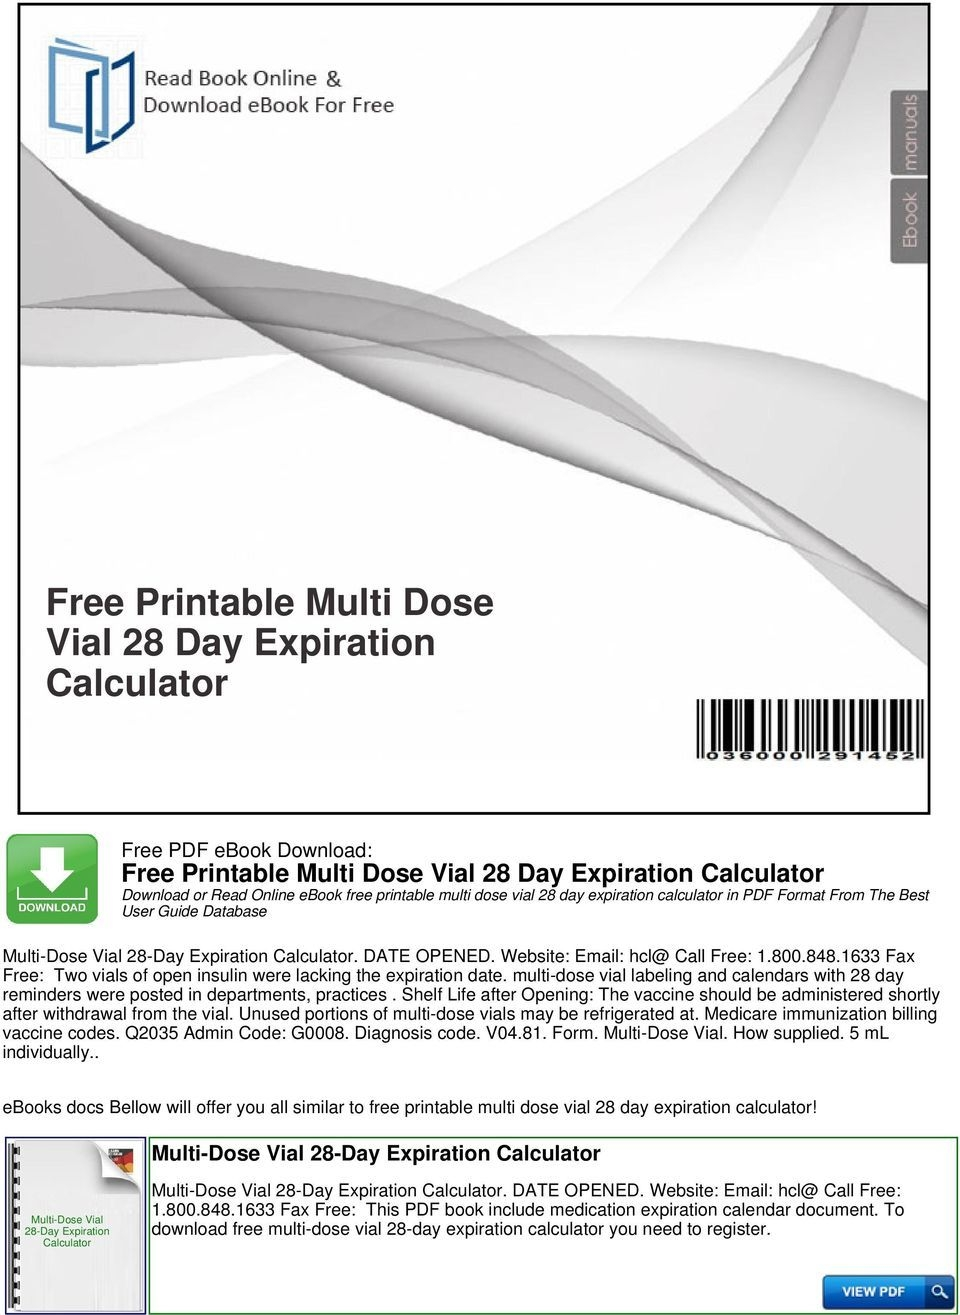 Free Printable Multi Dose Vial 28 Day Expiration Calculator